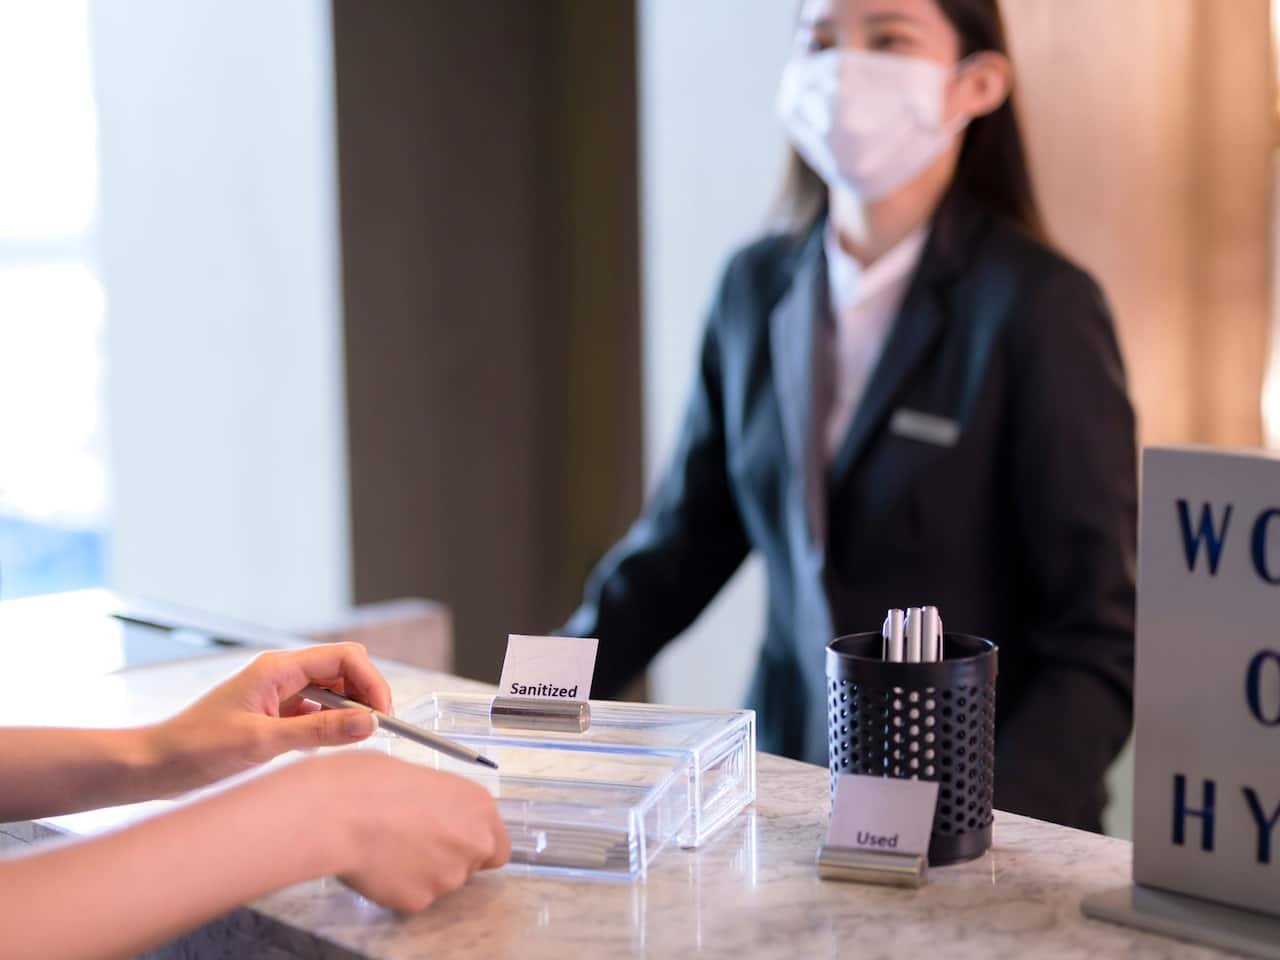 Sanitizing Front Desk Pen with Staff